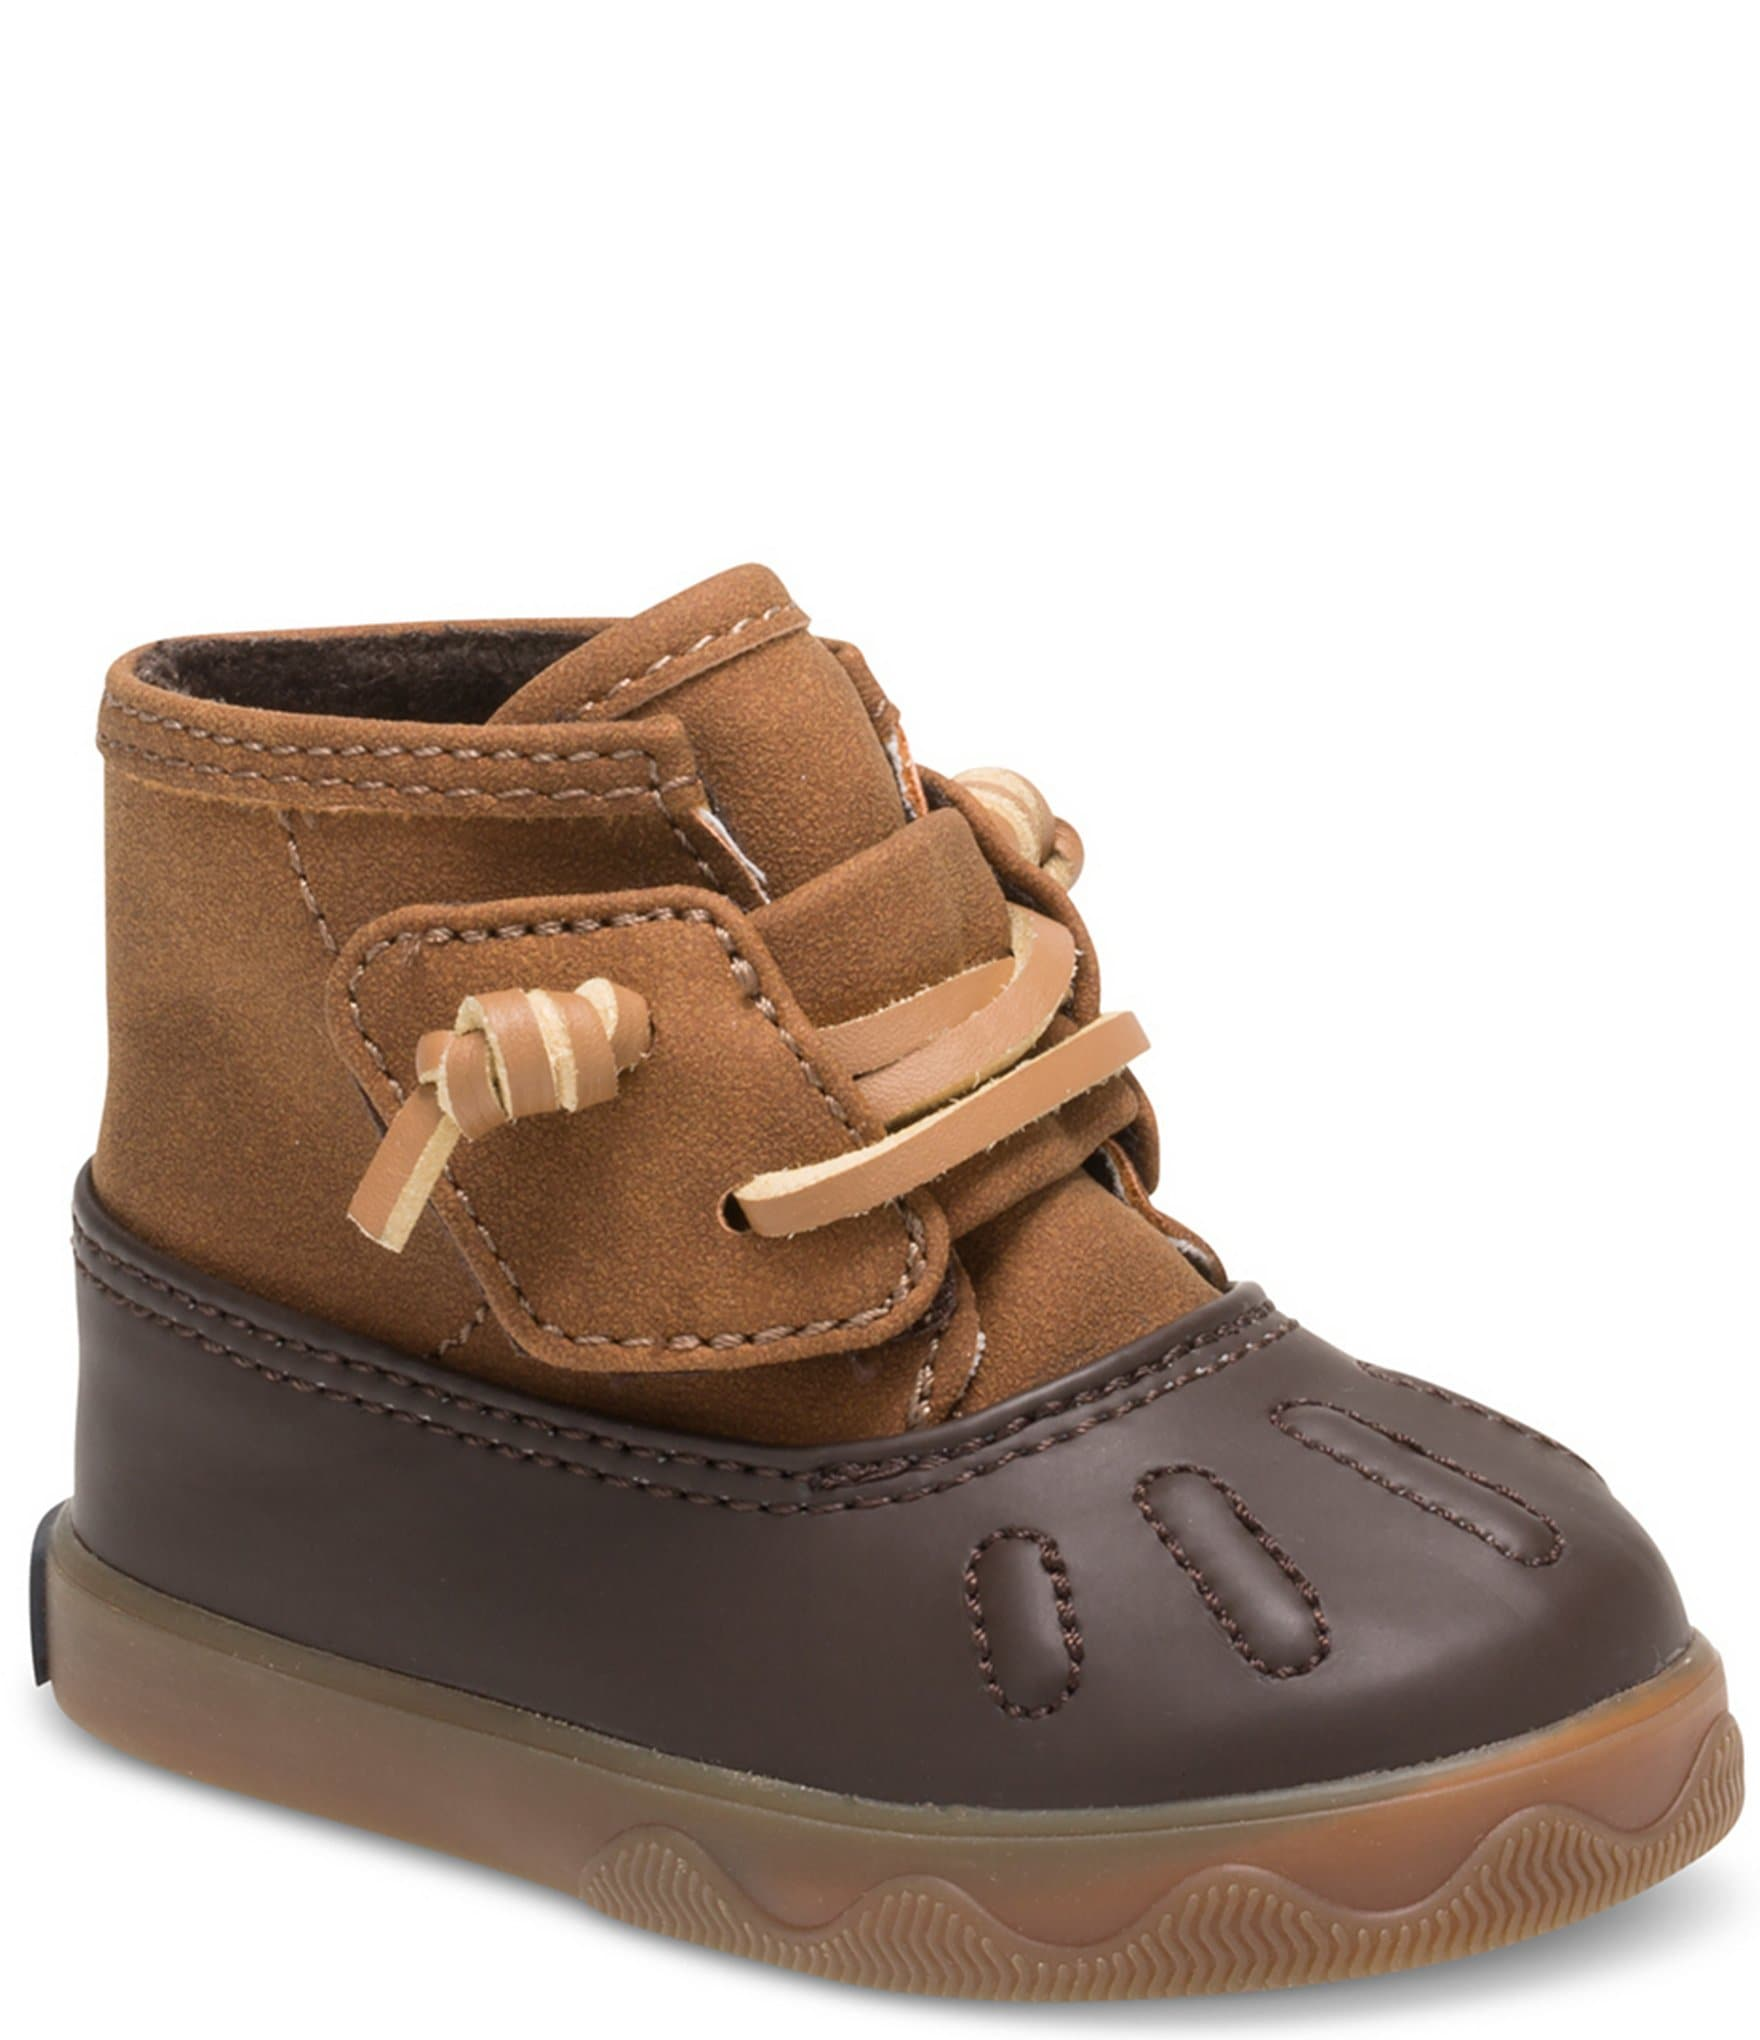 new concept e5a49 b007a Sperry Boys' Icestorm Winter Crib Shoes